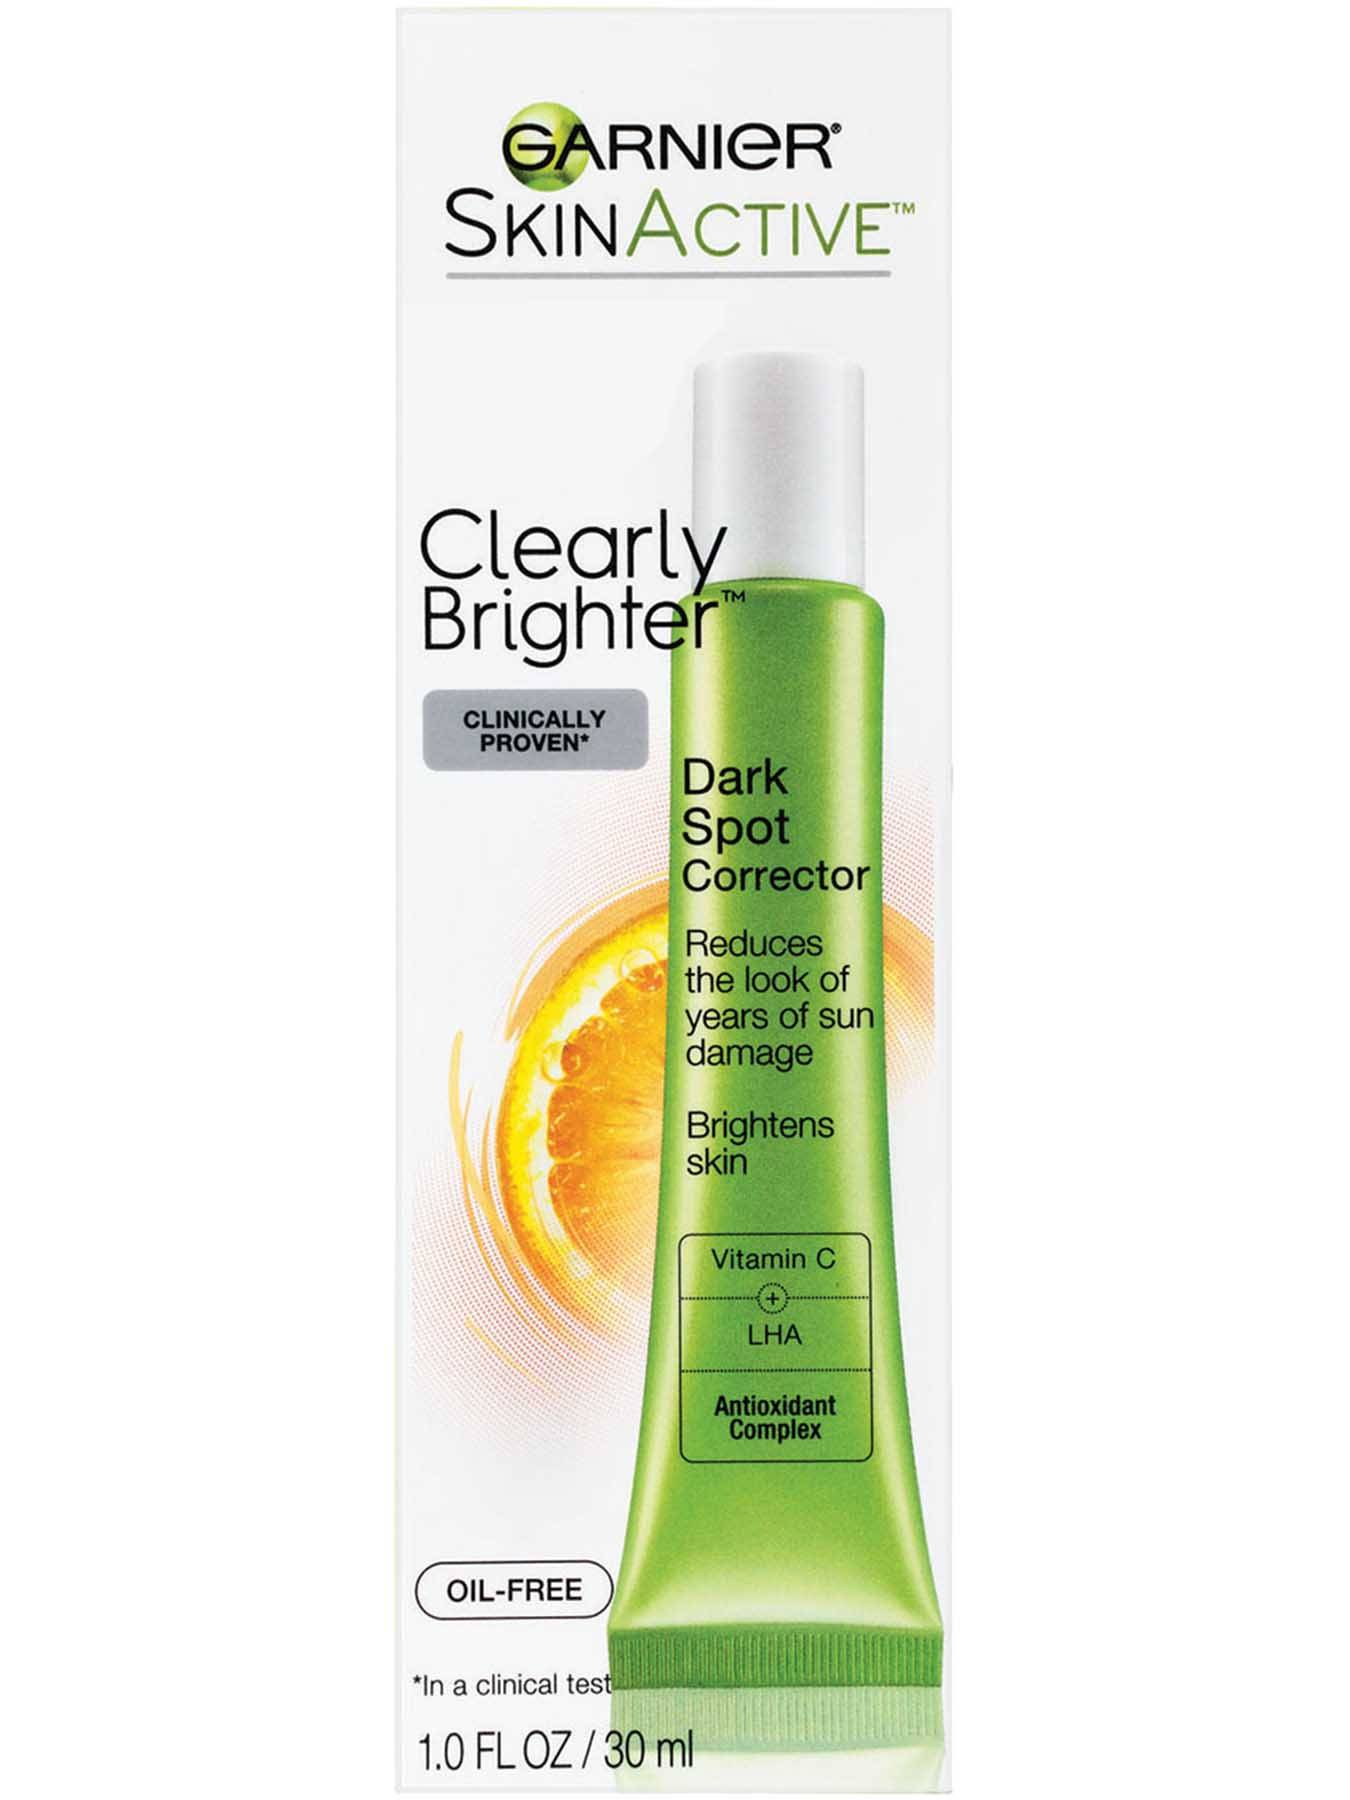 Garnier SkinActive Clearly Brighter Dark Spot Corrector Box Back Of Bottle